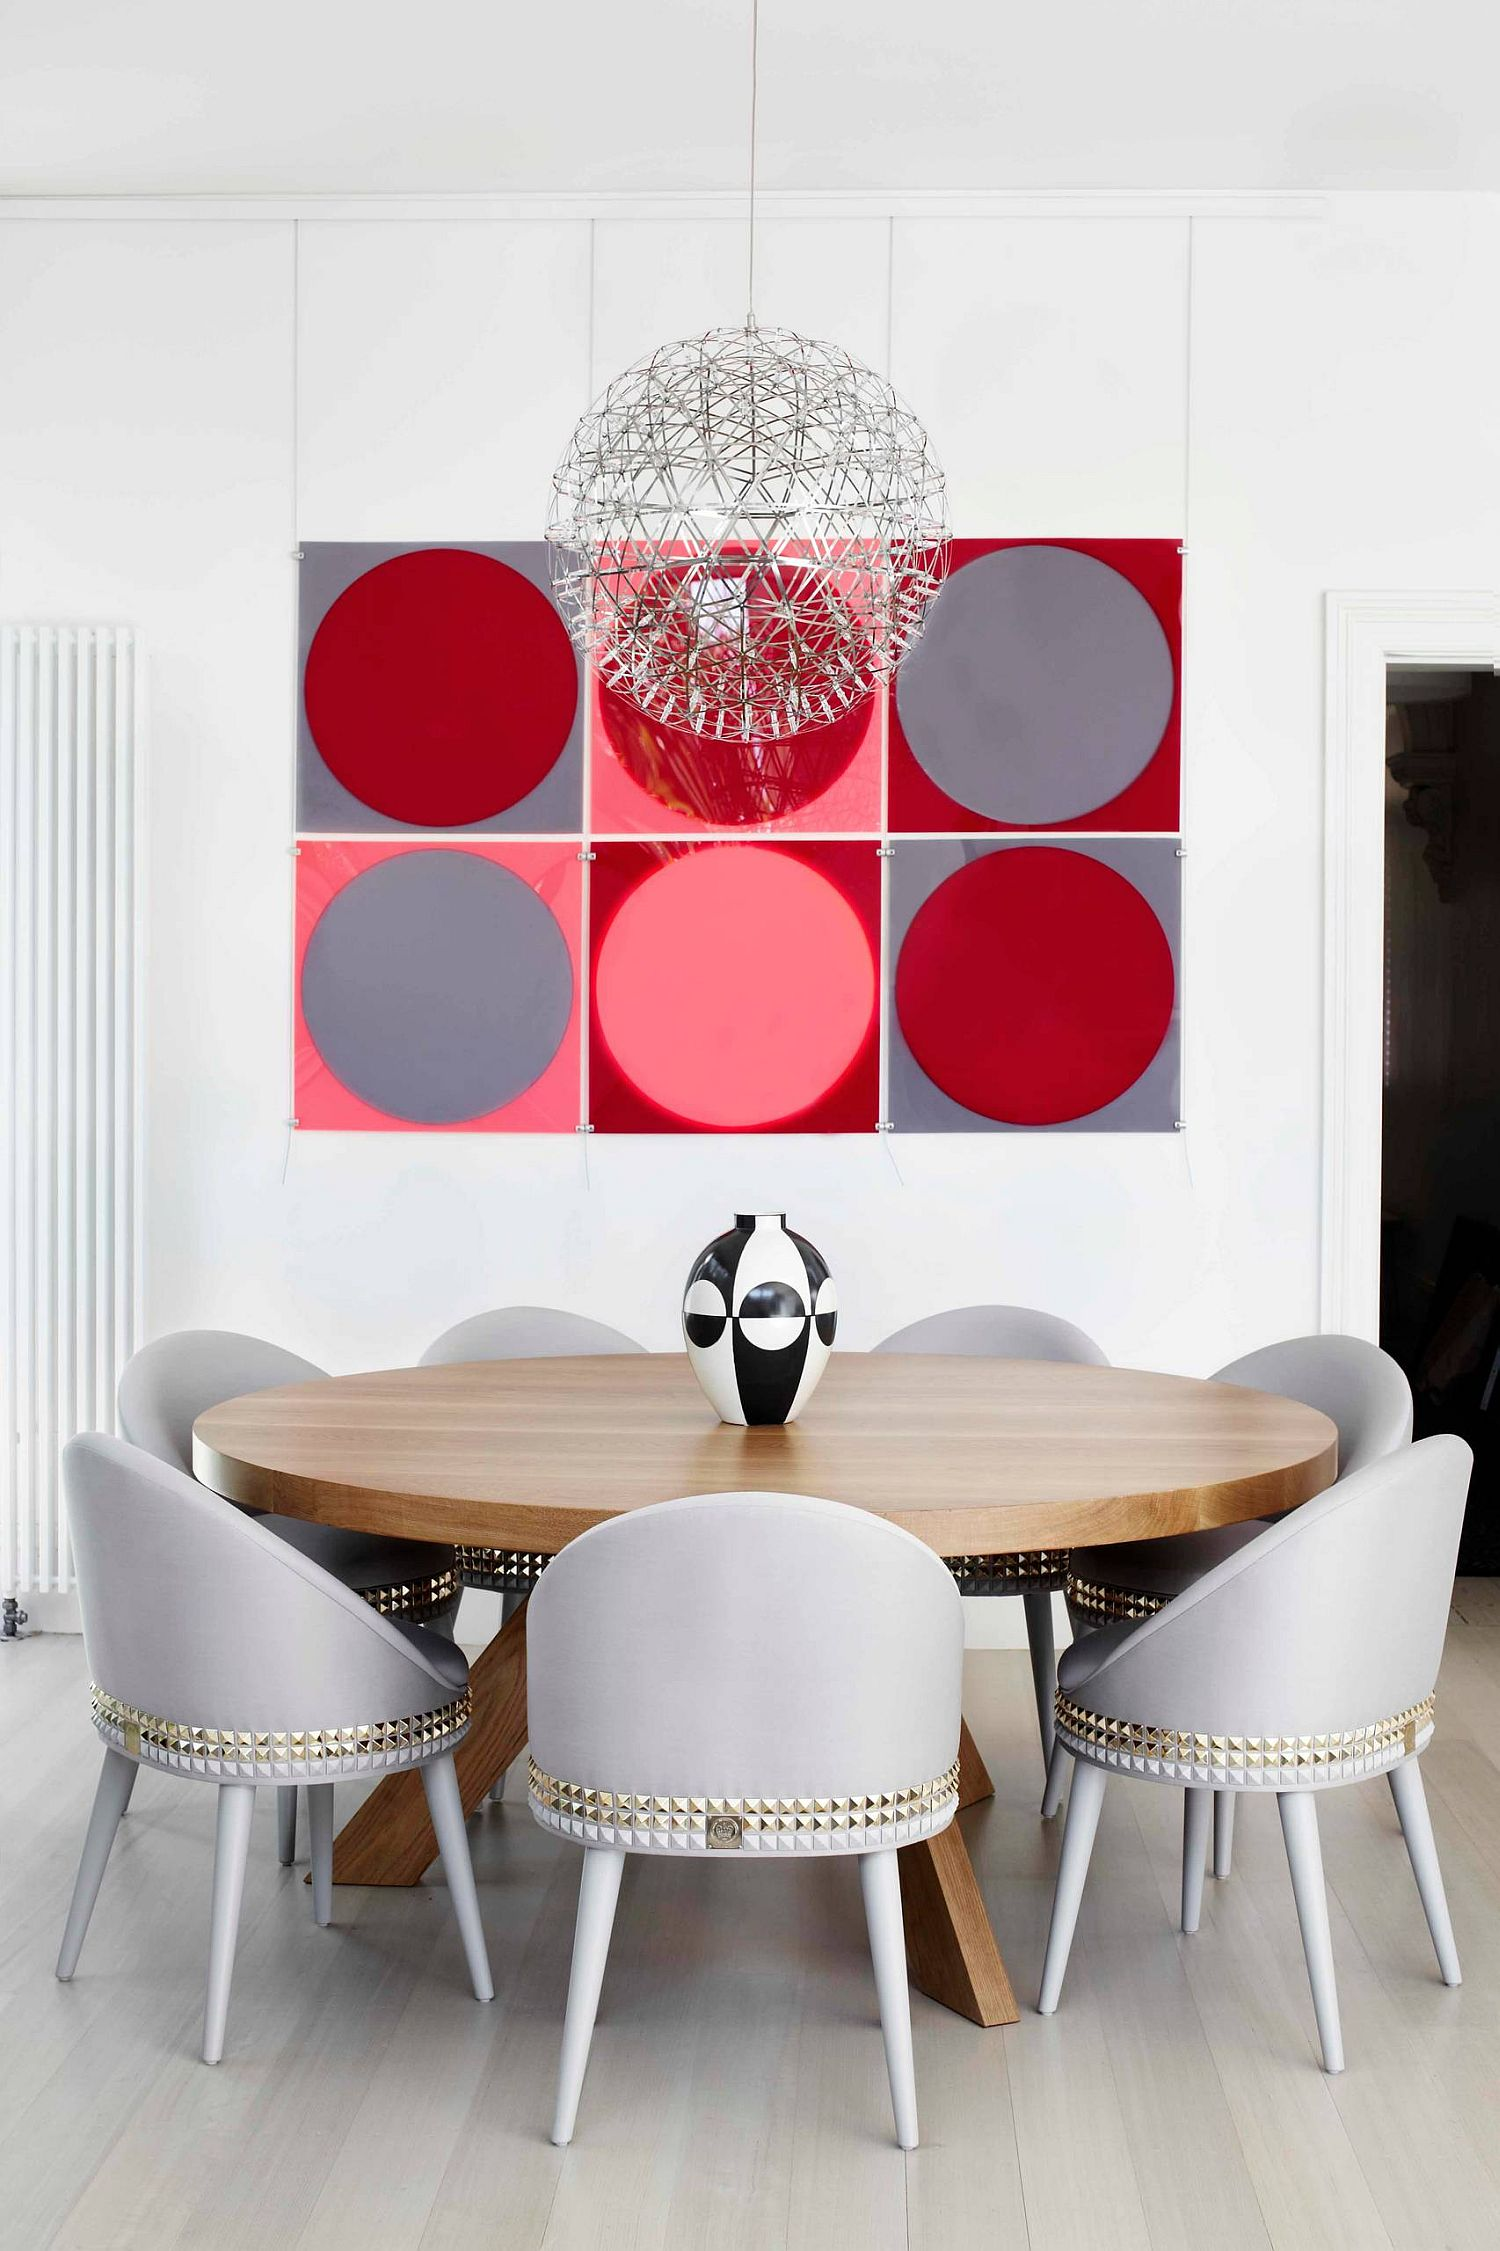 It-is-the-wall-art-that-adds-color-to-this-contemporary-dining-room